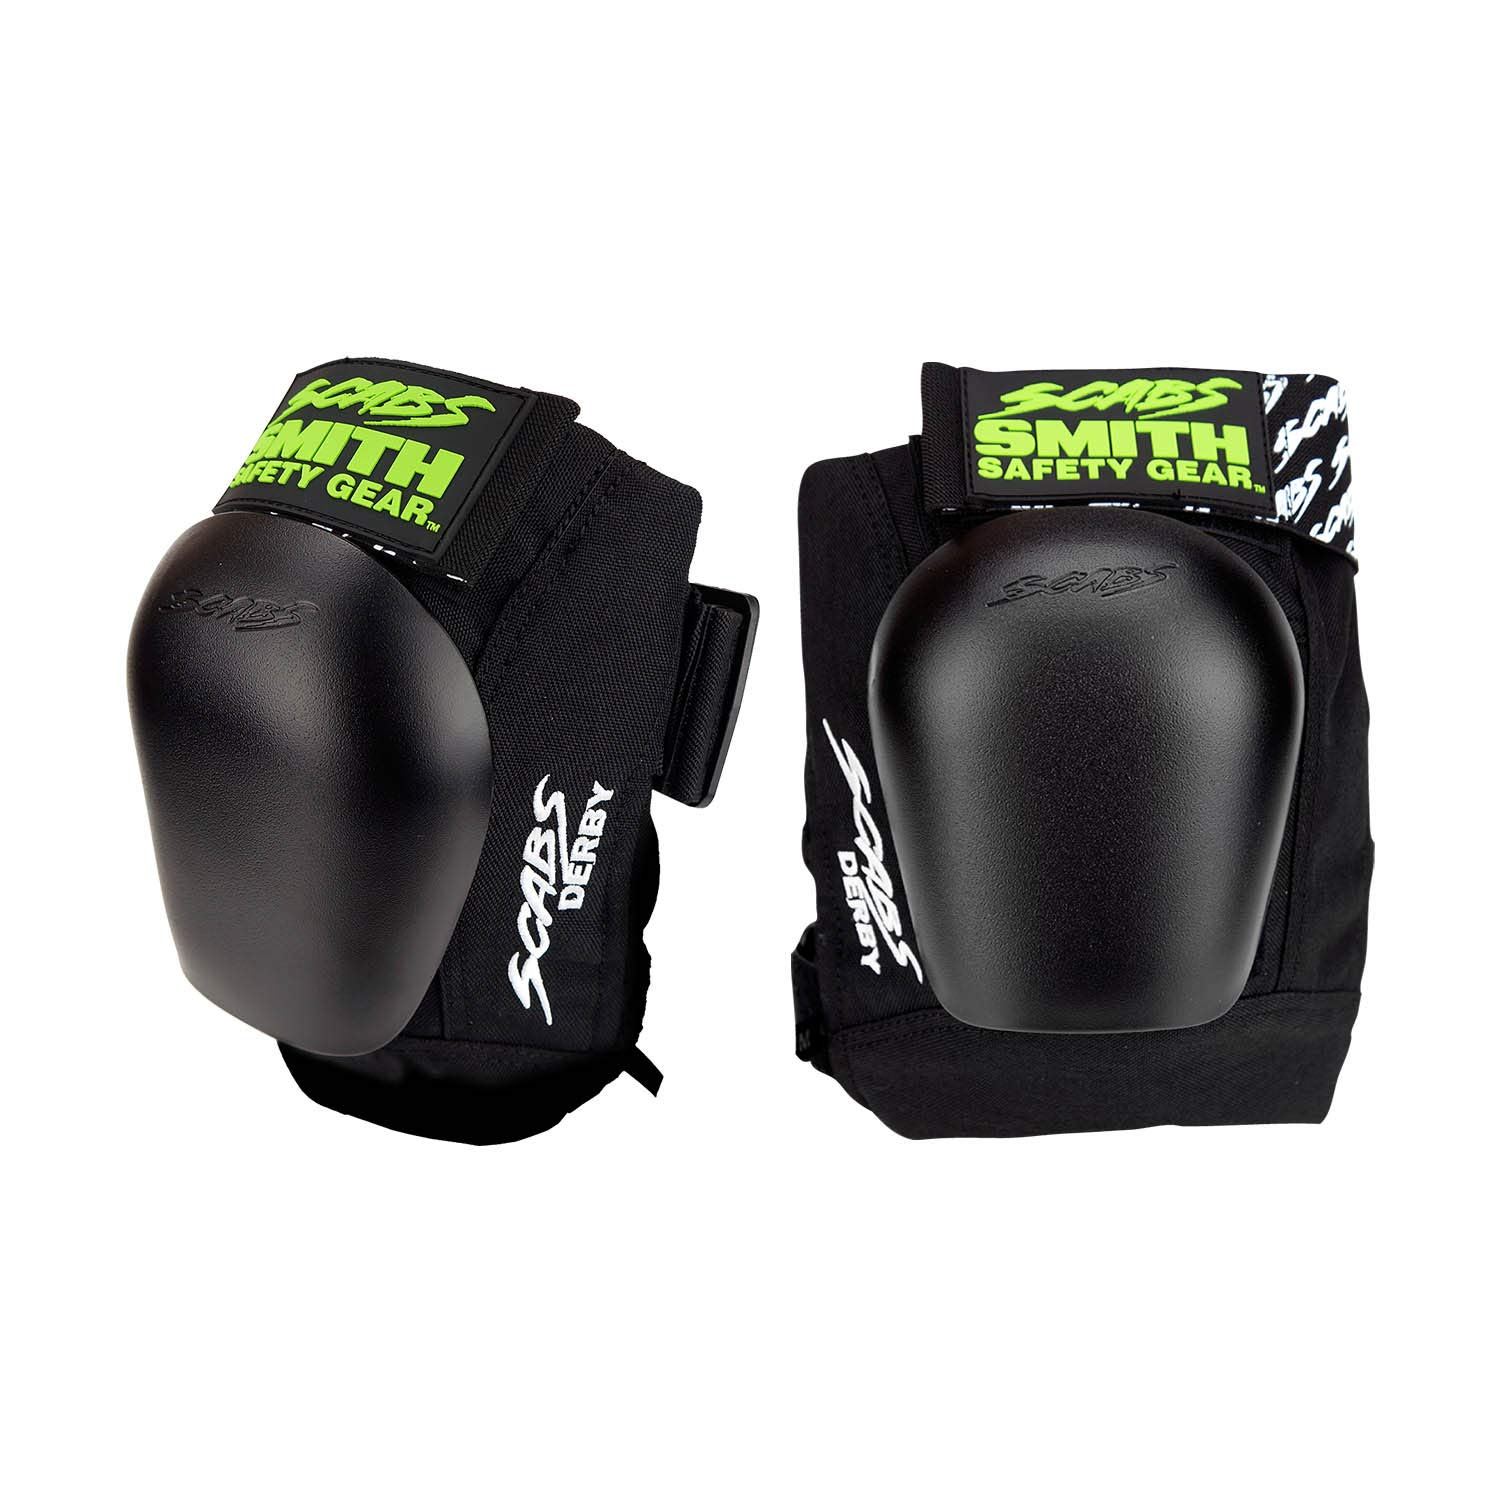 Smith Safety Gear Scabs Derby Knee Pad, Black/Black, Large